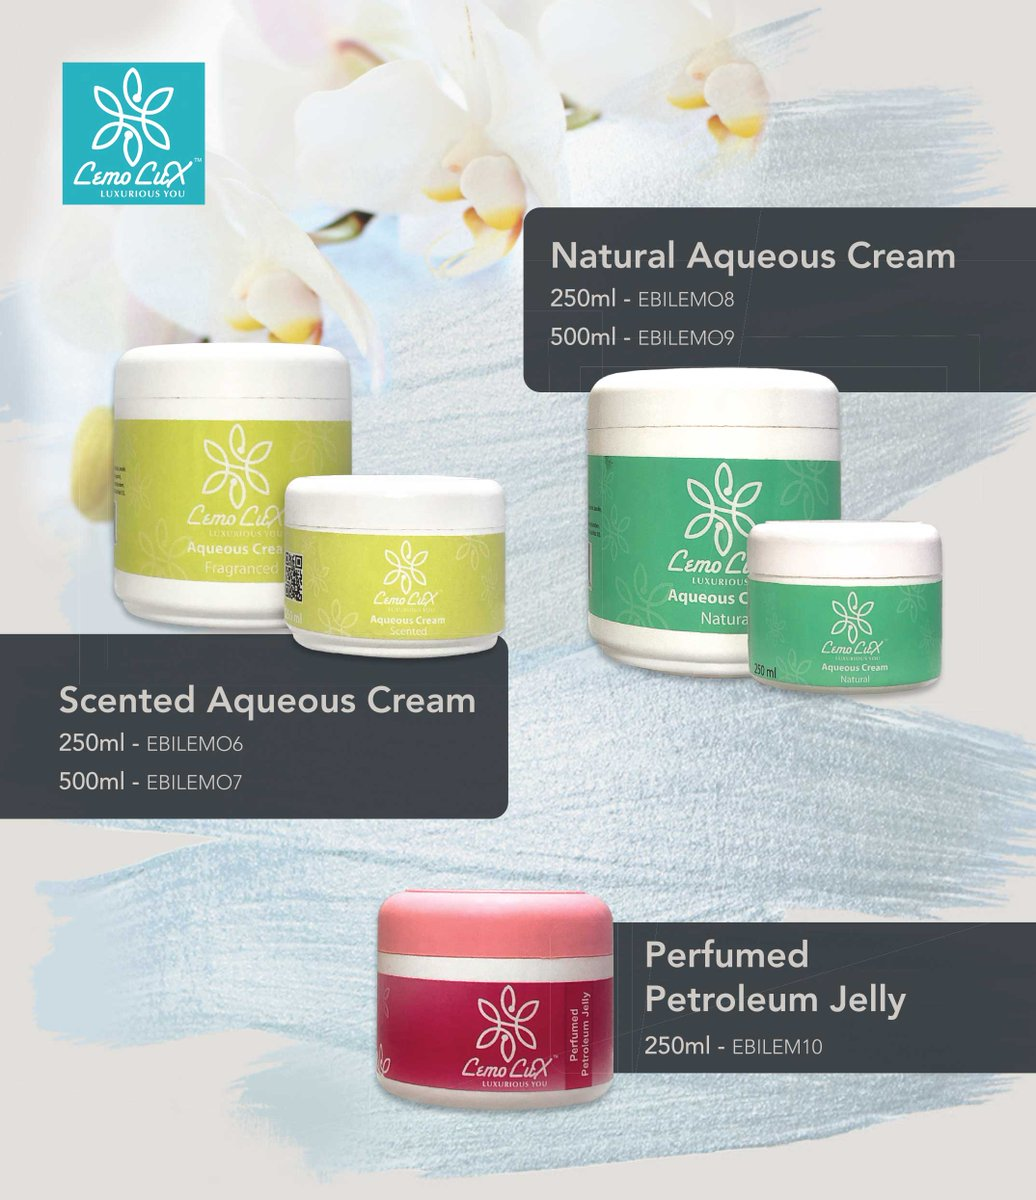 Lemo Lux Aqueous Cream is a non-greasy emollient or moisturizer, it relieves dry skin conditions such as eczema. it also helps to retain moisture on the skin and reduce dryness.  #lemoluxaqueouscream #mylemolux @chemfresh SA @chemfresh_SA visit our store https://t.co/OGgh8F6do6 https://t.co/n2bvBjnPQD